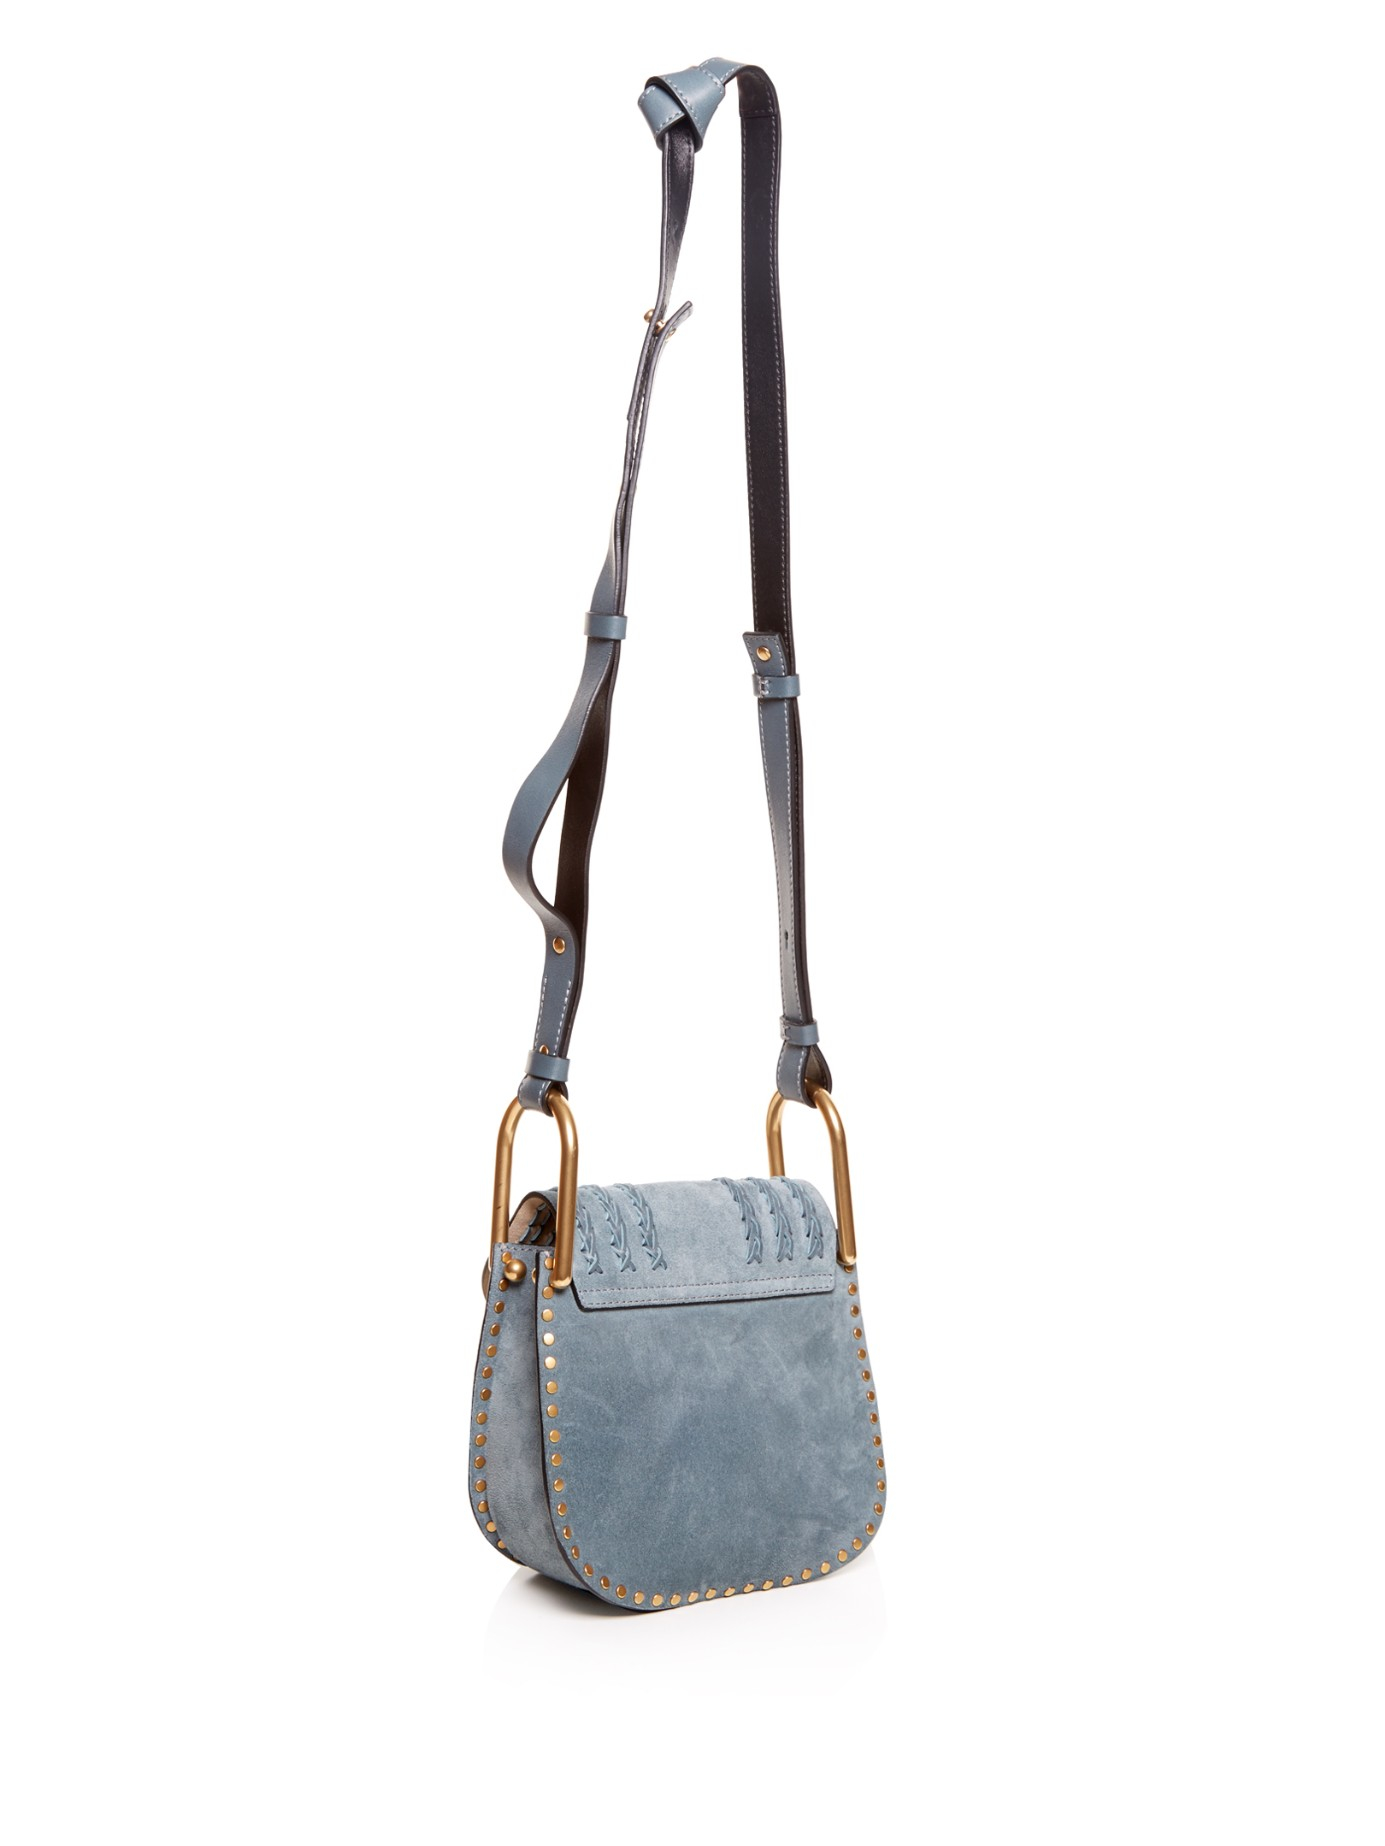 Chlo�� Hudson Suede Cross-Body Bag in Blue (LIGHT BLUE) | Lyst